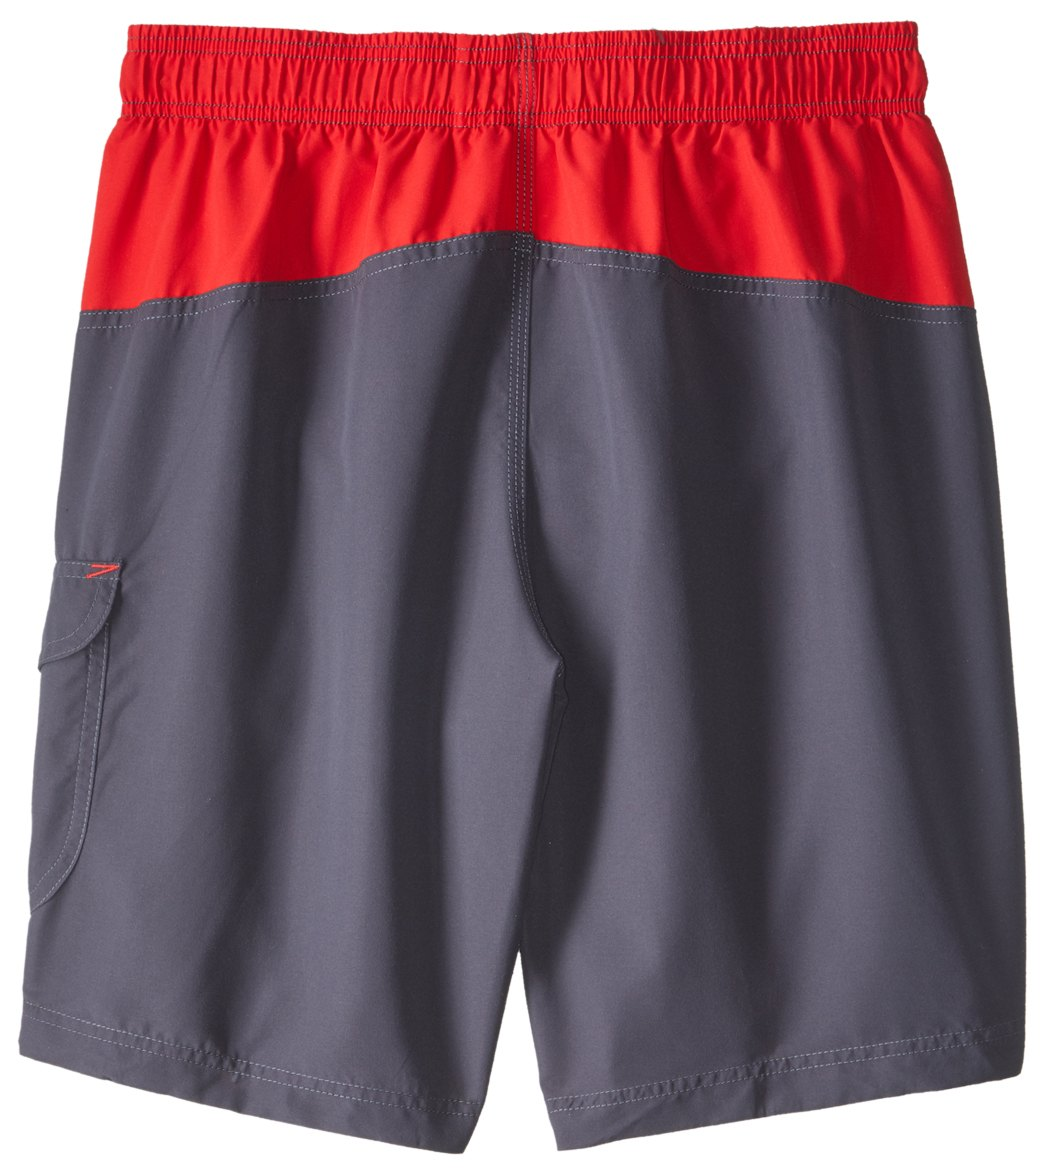 8a0916f5e8 Speedo Men's 20'' Marina Sport Volley Water Short at SwimOutlet.com